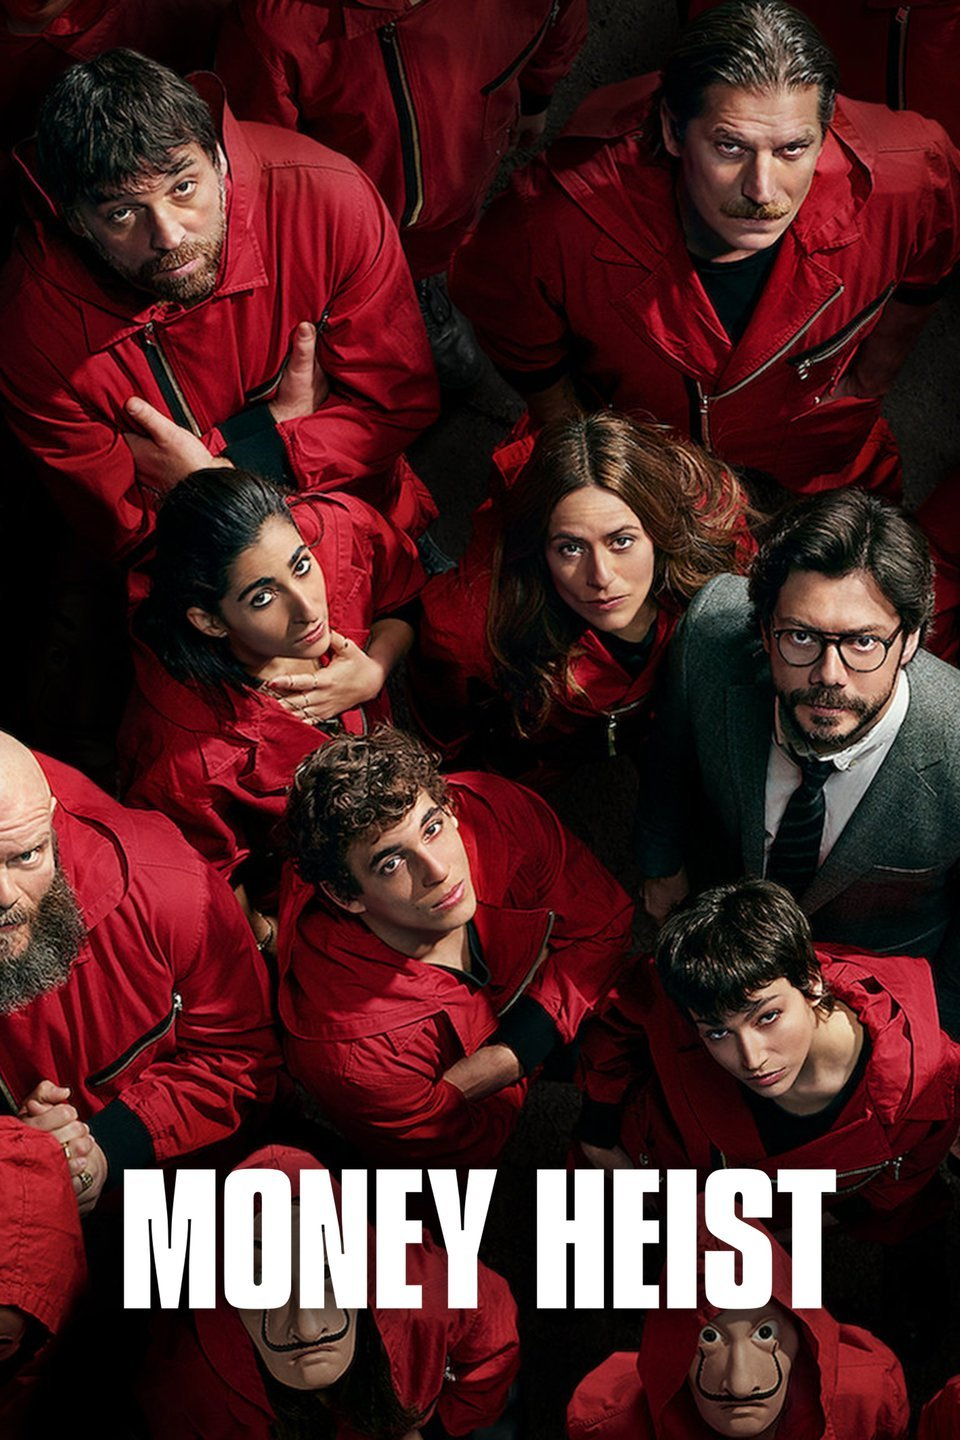 Money Heist (2020) Full Complete S04 1080P HDRip Download